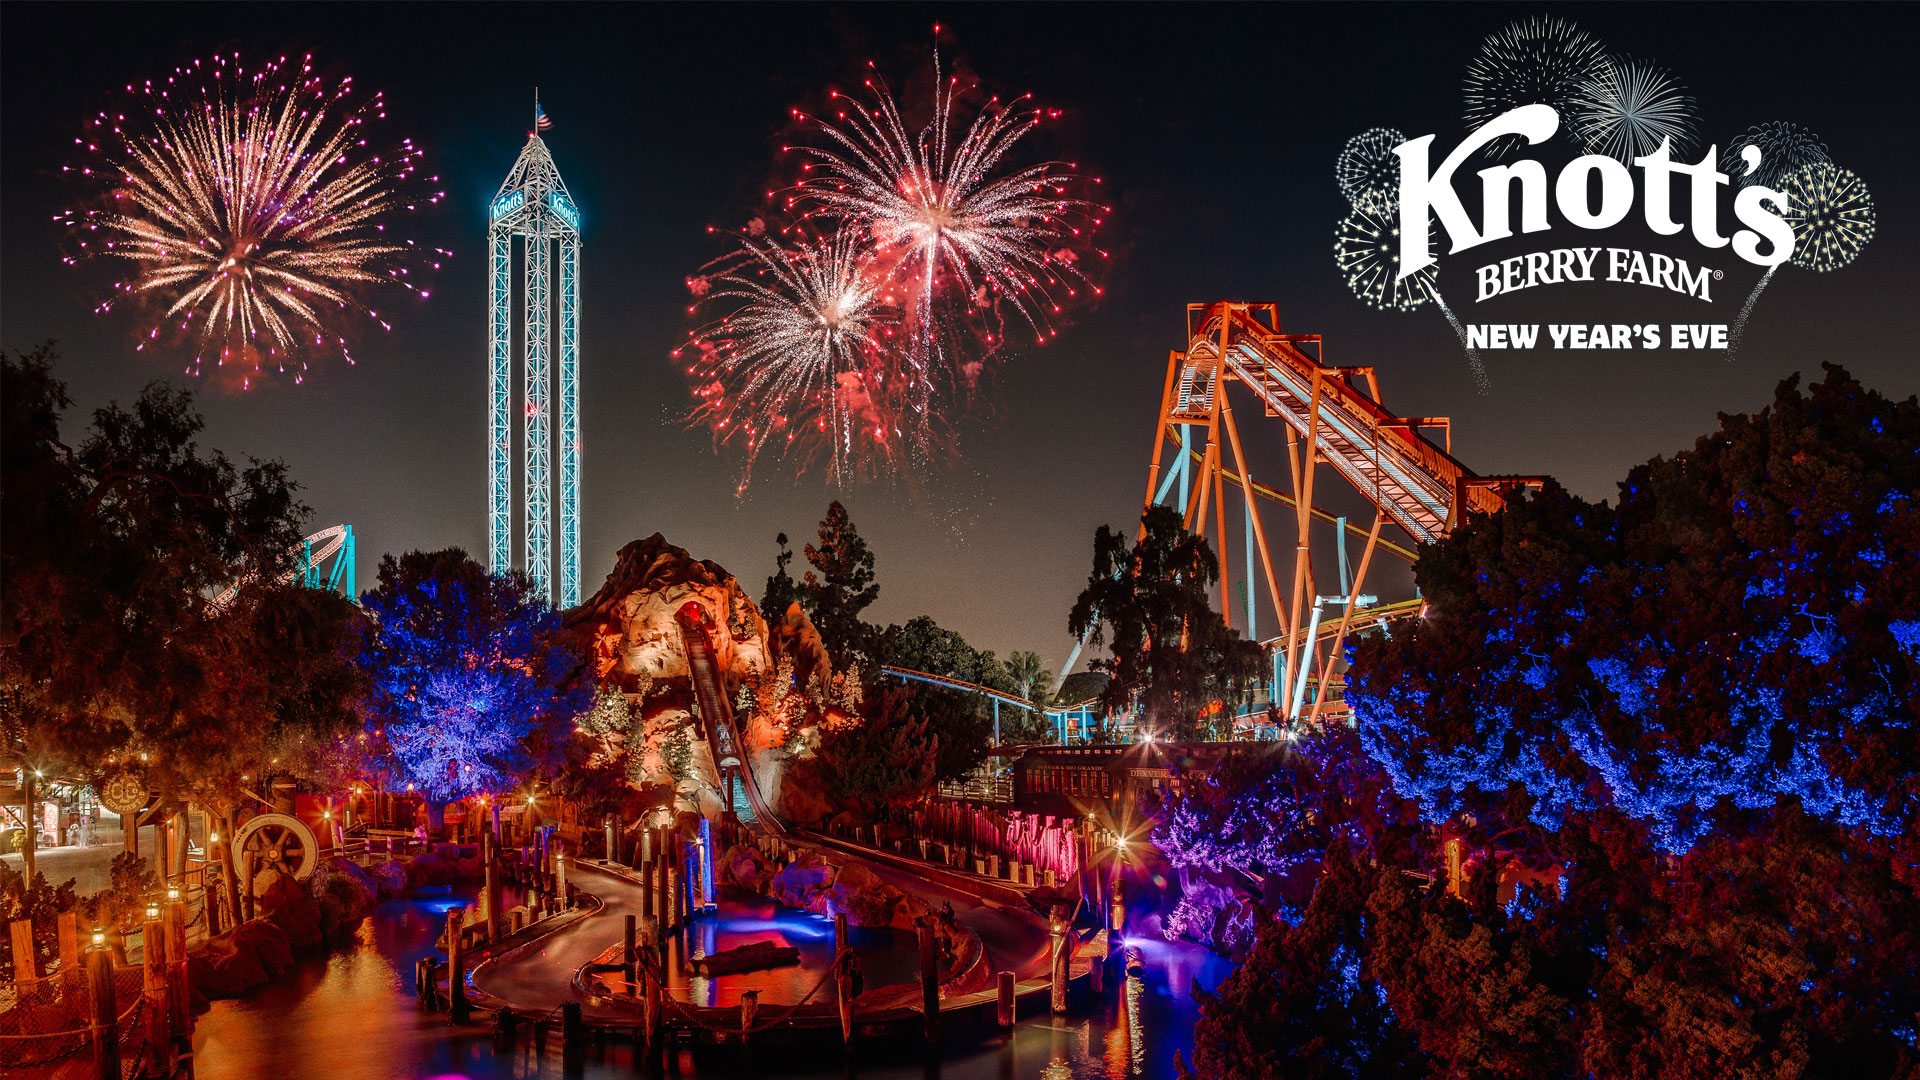 Join Knott's Berry Farm on New Year's Eve for Spectacular Fireworks and Musical Celebrations